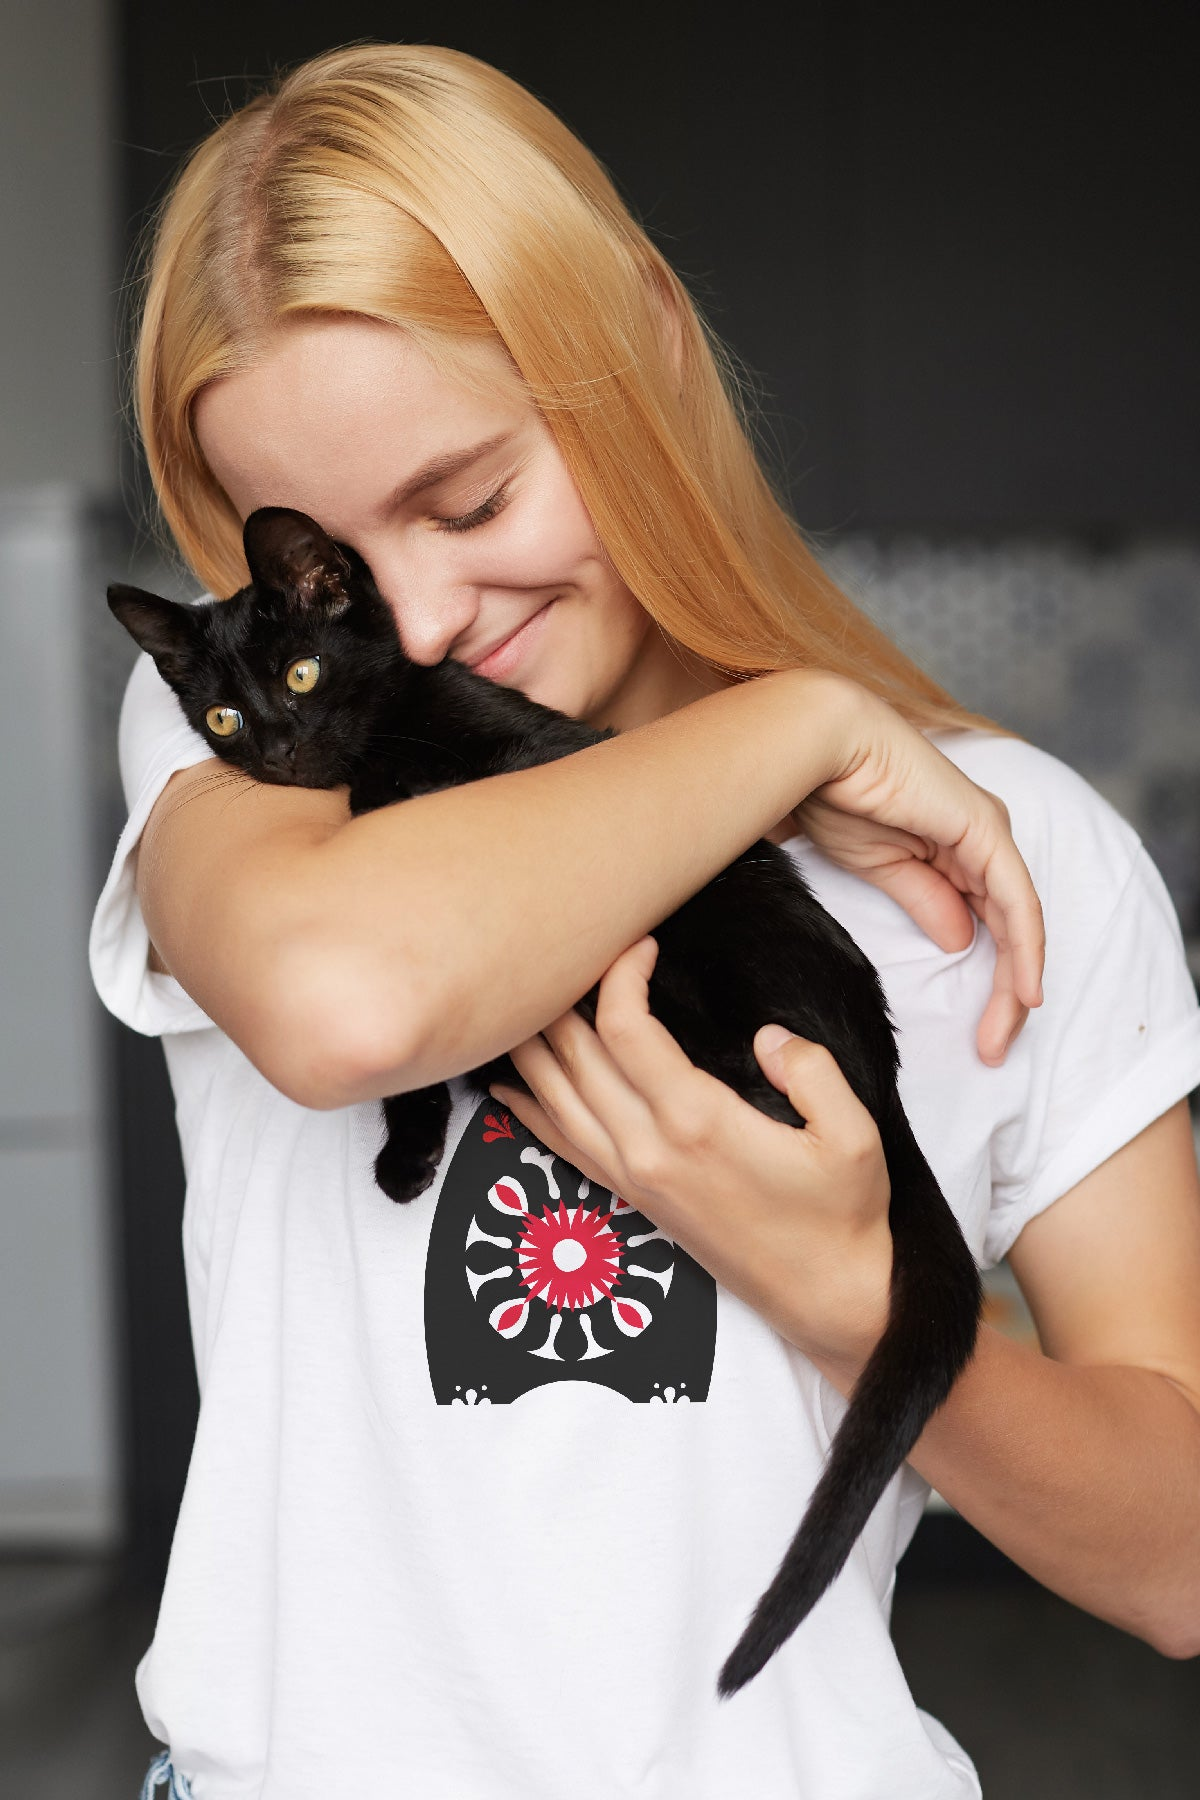 Woman wearing Behemoth t-shirt and holding a black kitten.